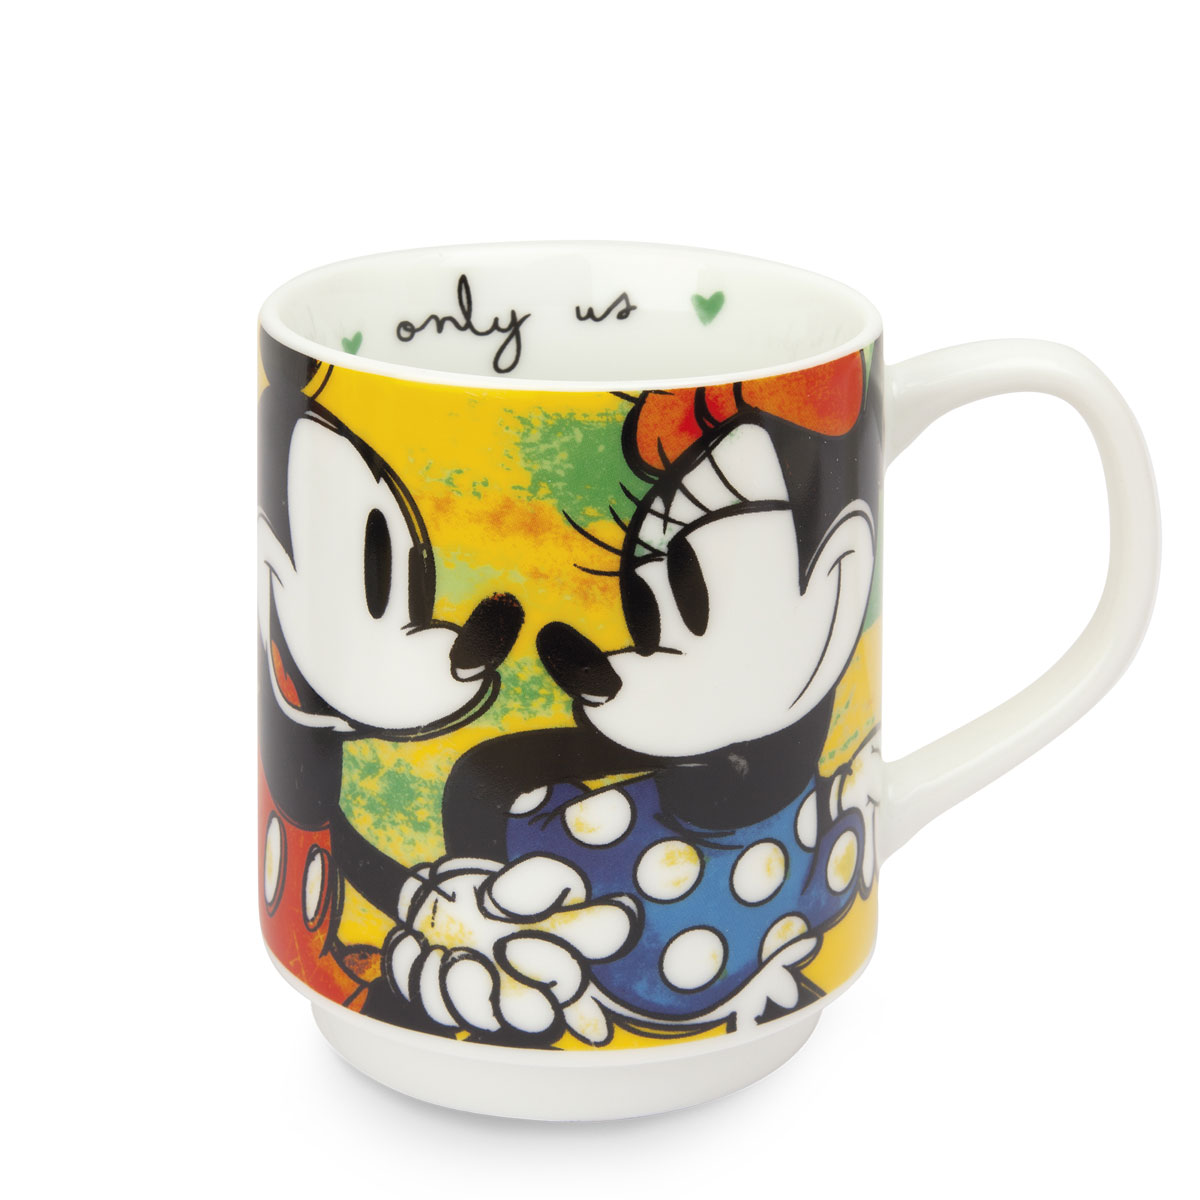 Green Mickey Set - 2 Stackable Mugs+2 Placemat